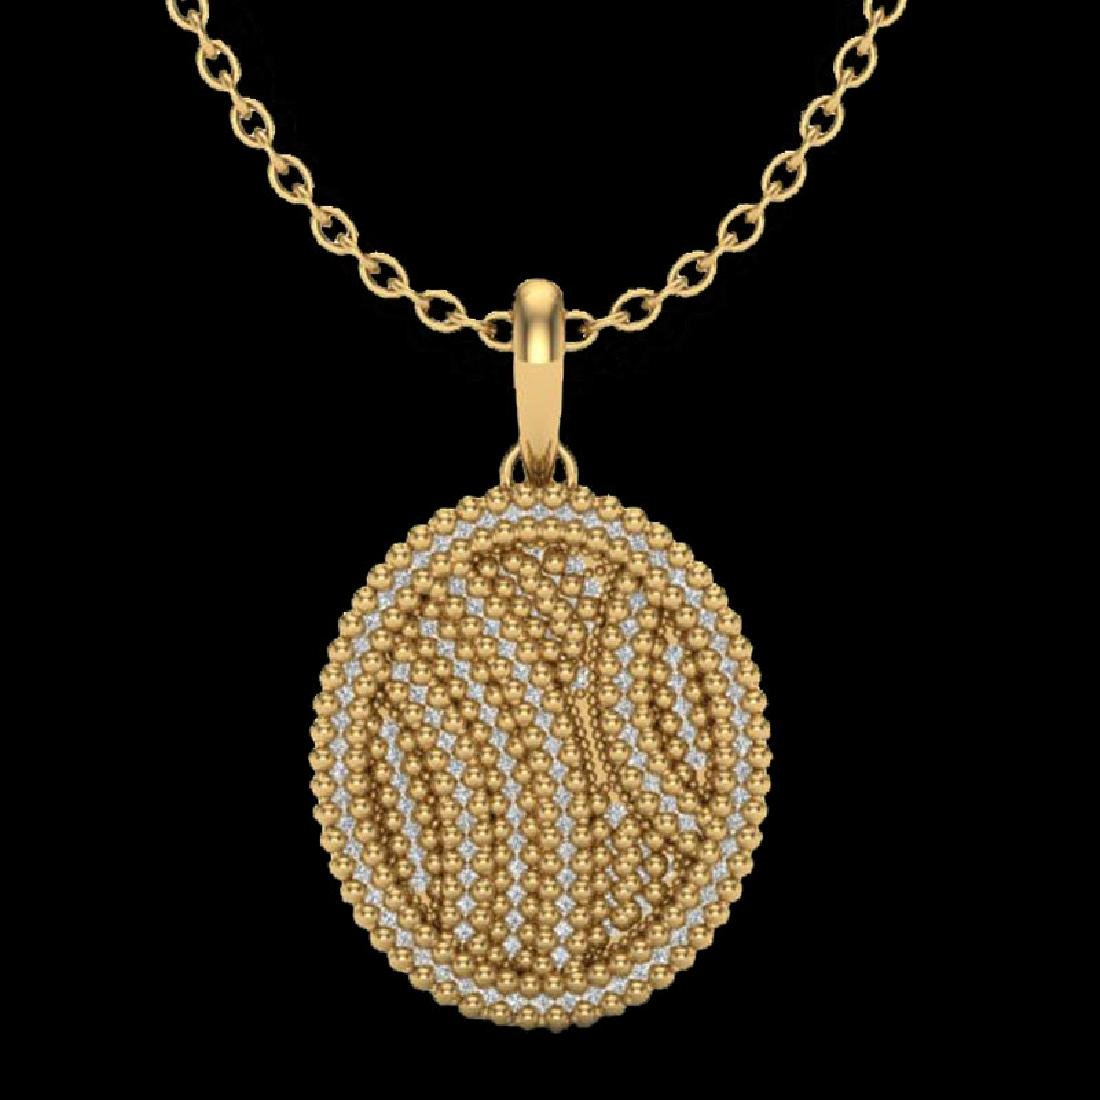 1 CTW Micro Pave VS/SI Diamond Necklace 14K Yellow Gold